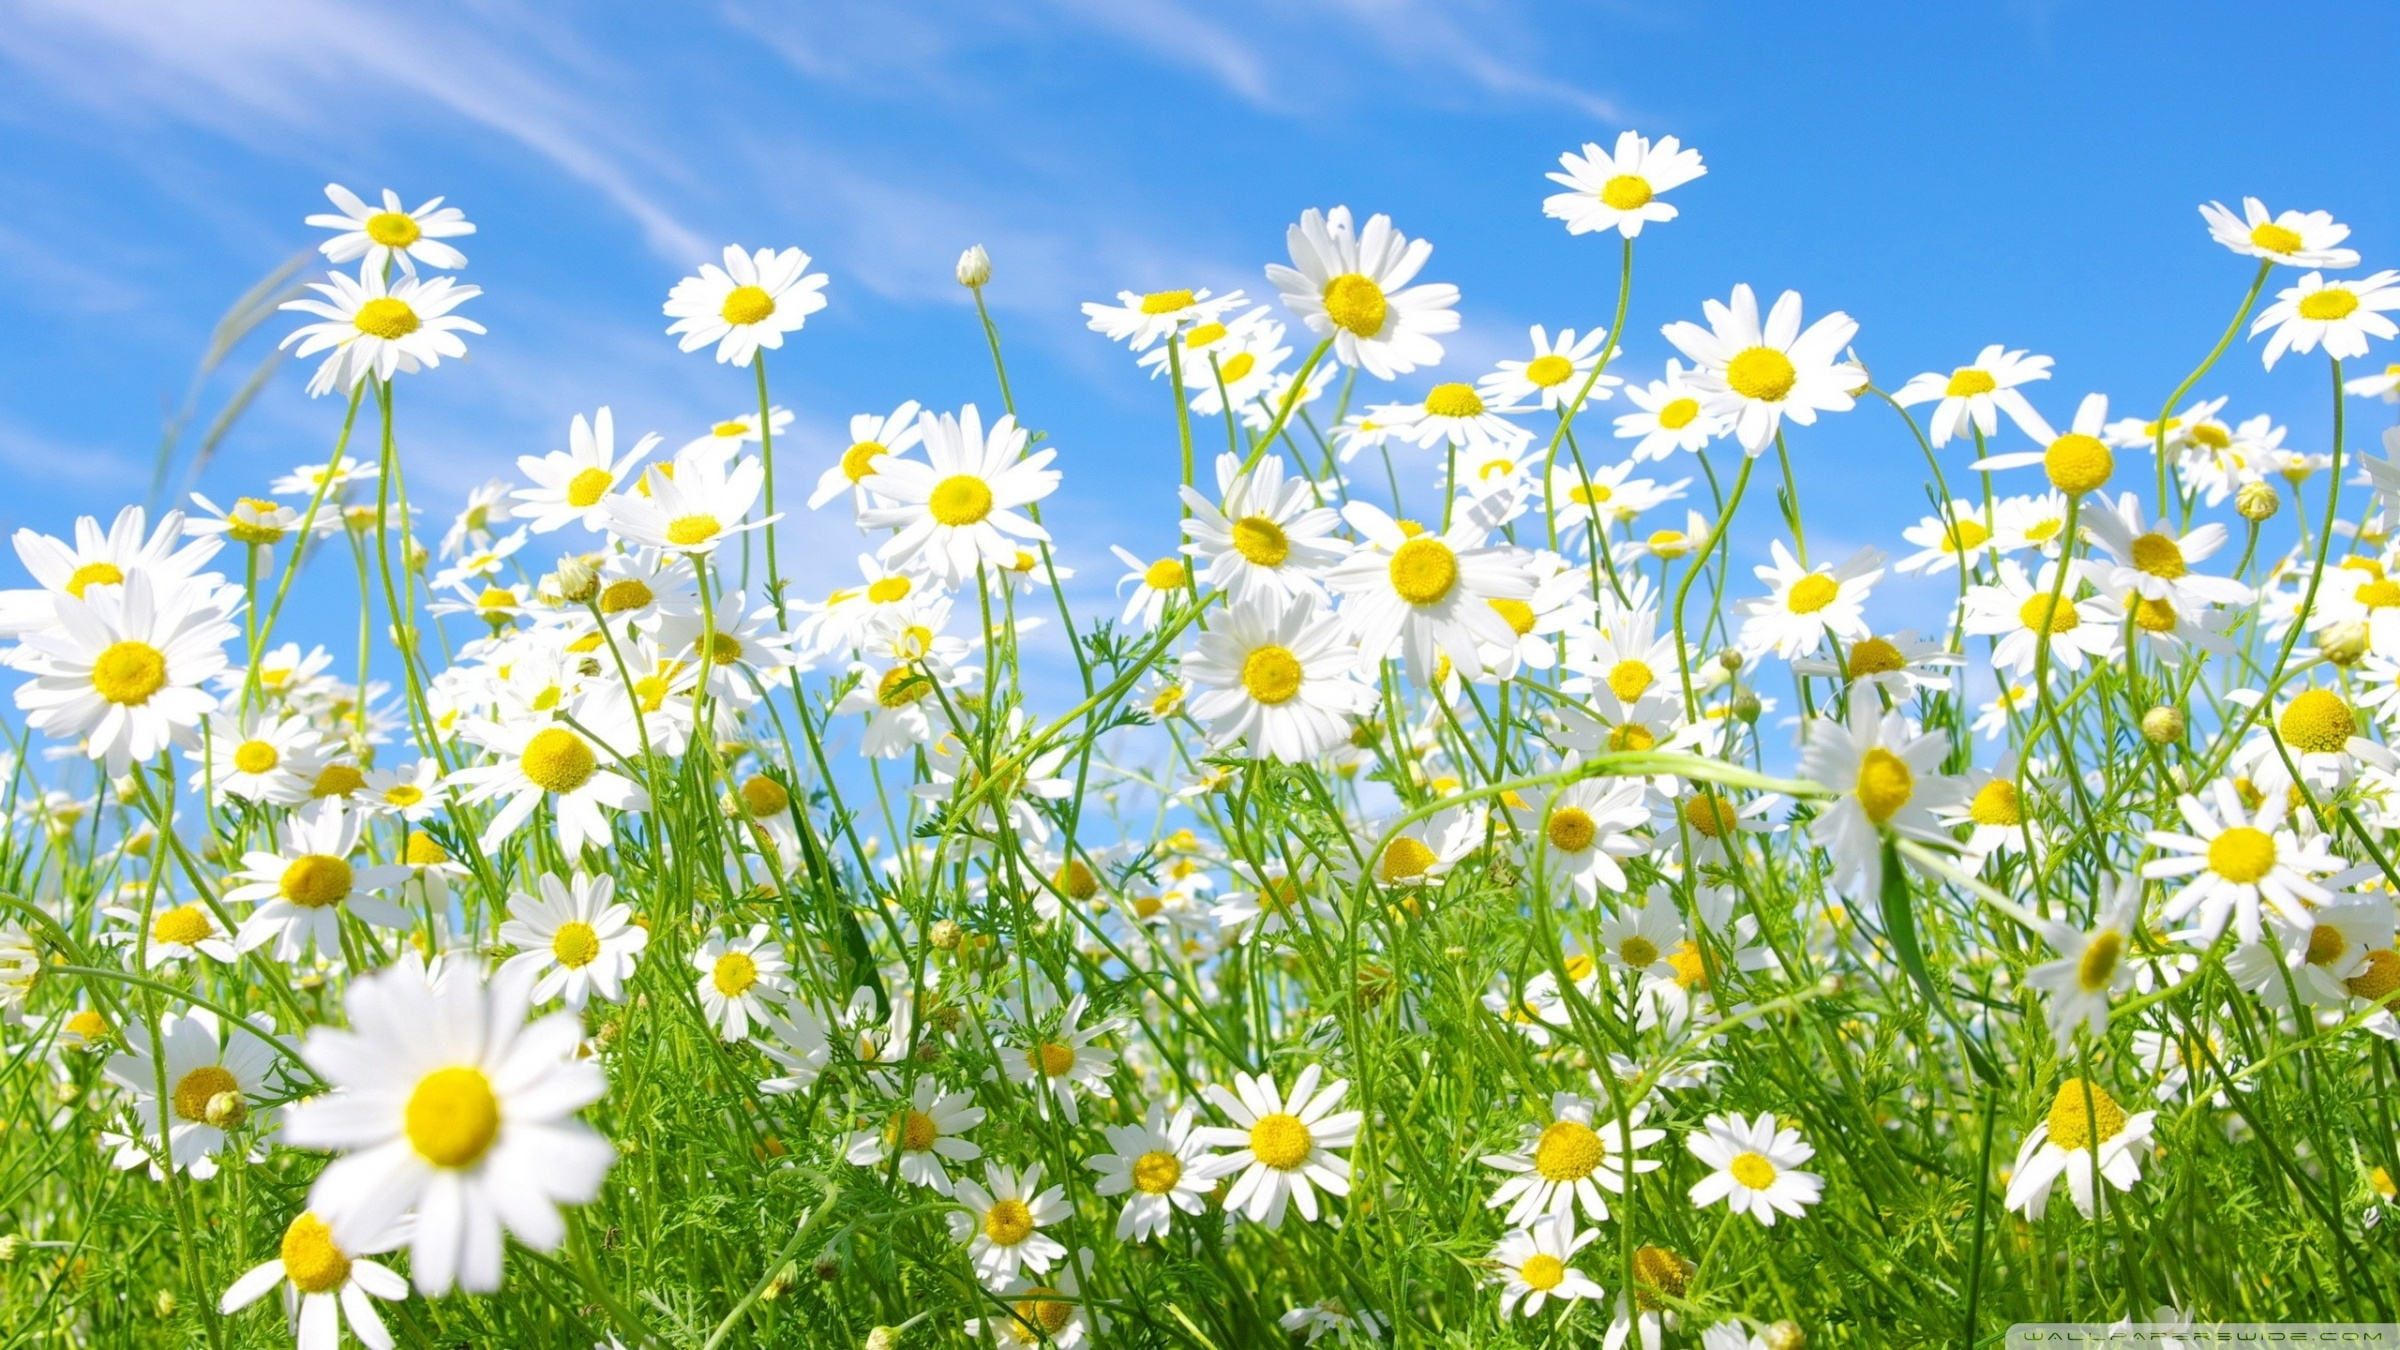 Daisies Wallpaper HD